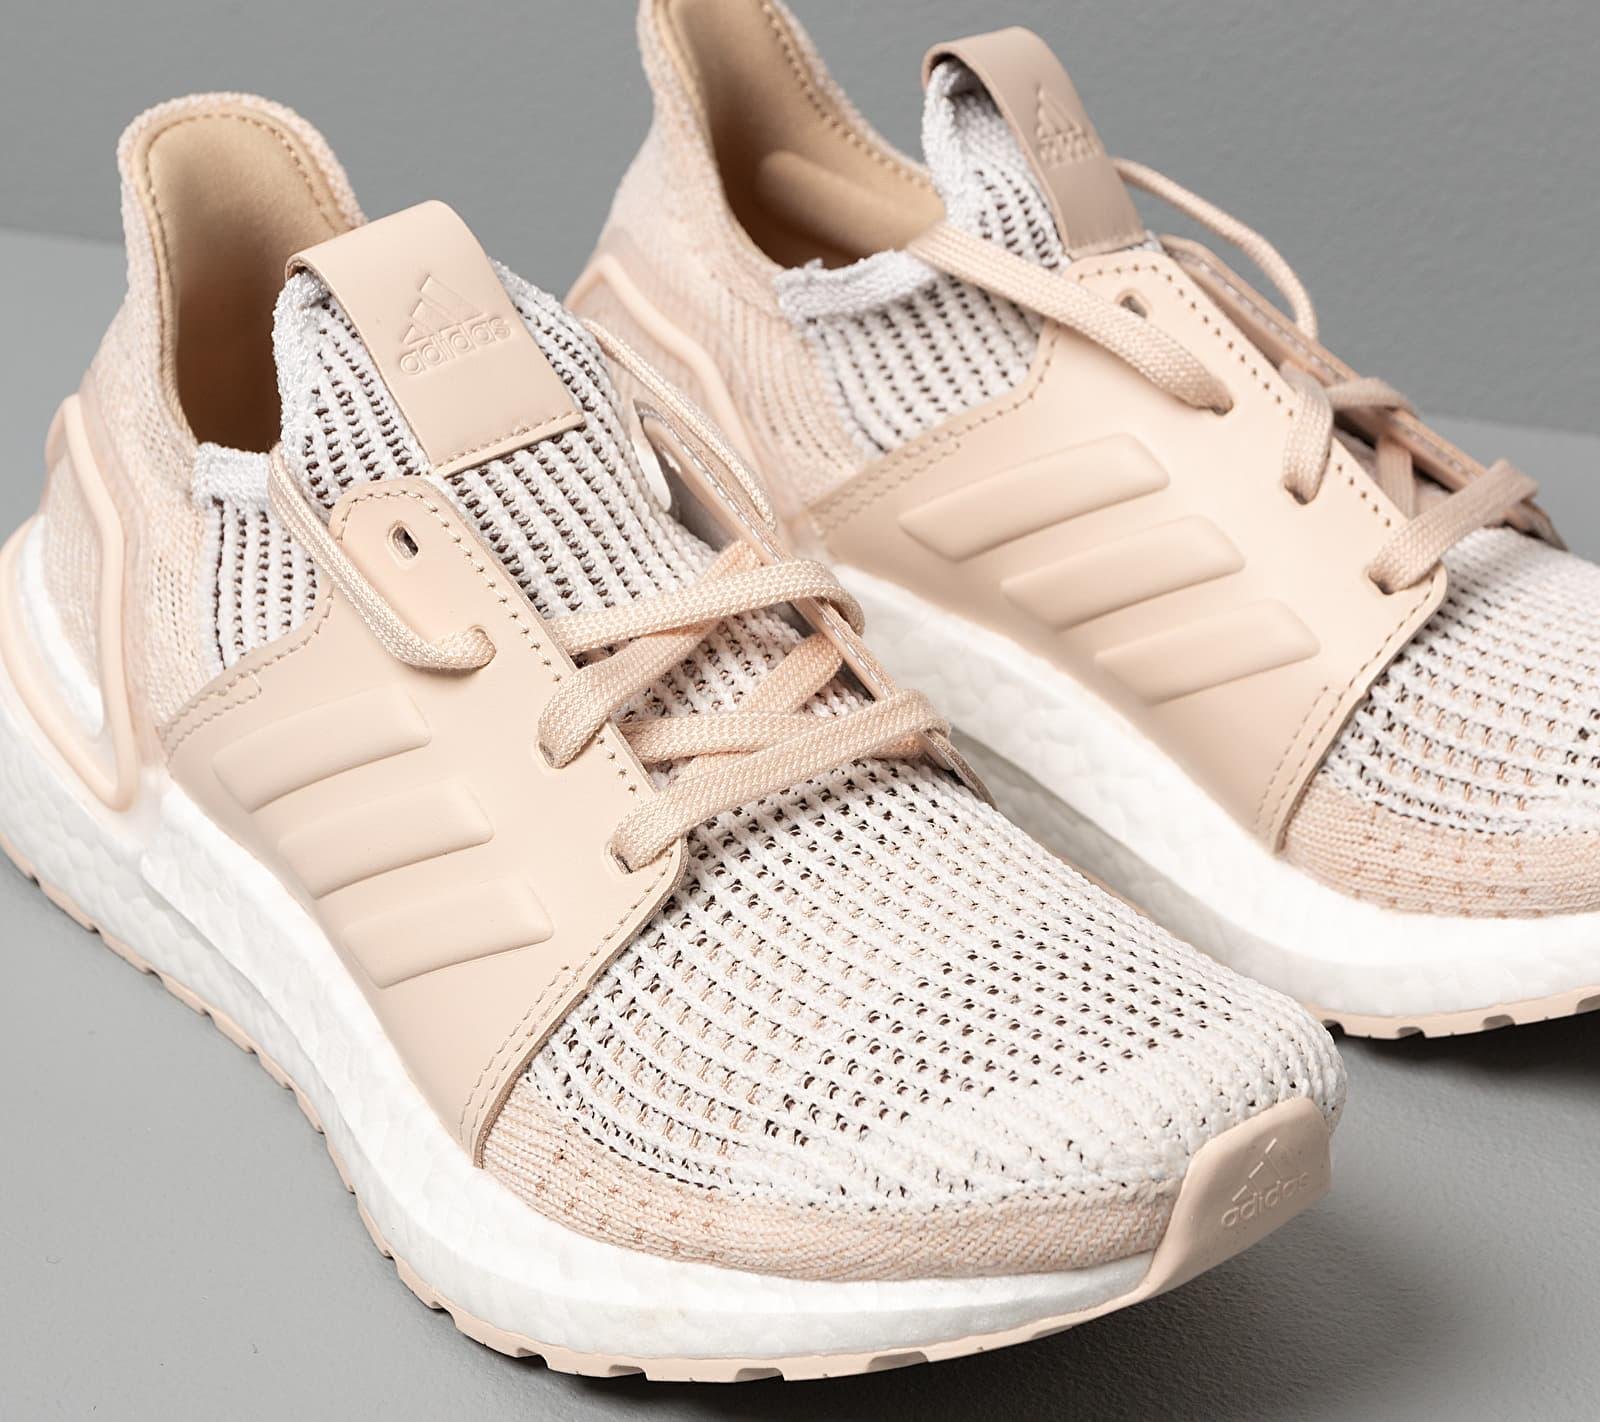 Adidas Ultraboost 19 W Crystal White/ Brown/ Linen